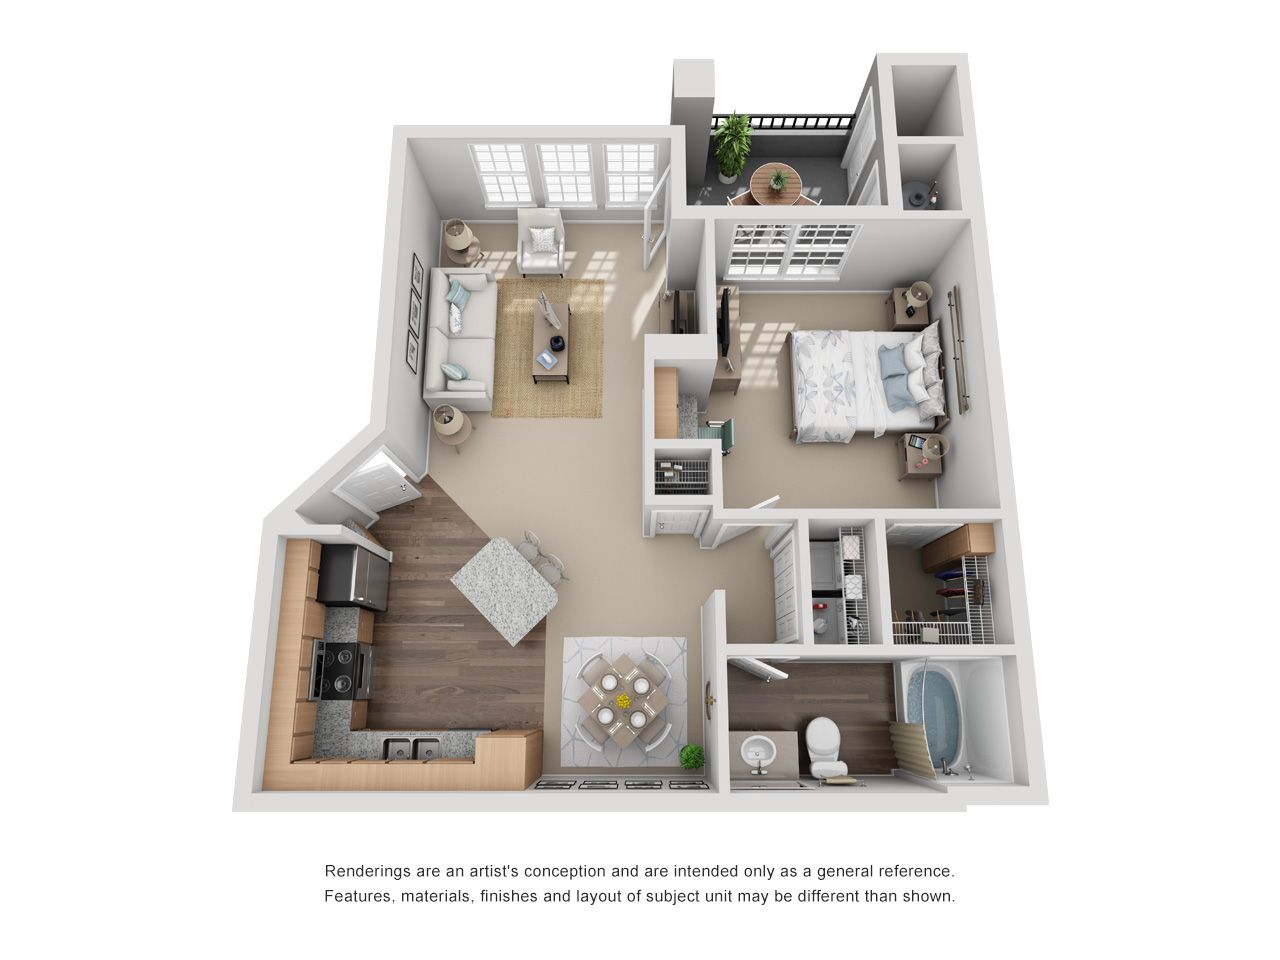 1 2 And 3 Bedroom Apartments In Aurora Co For Rent Aurora Colorado Apartment Steadfast Apartment Layout Sims House Design House Plans